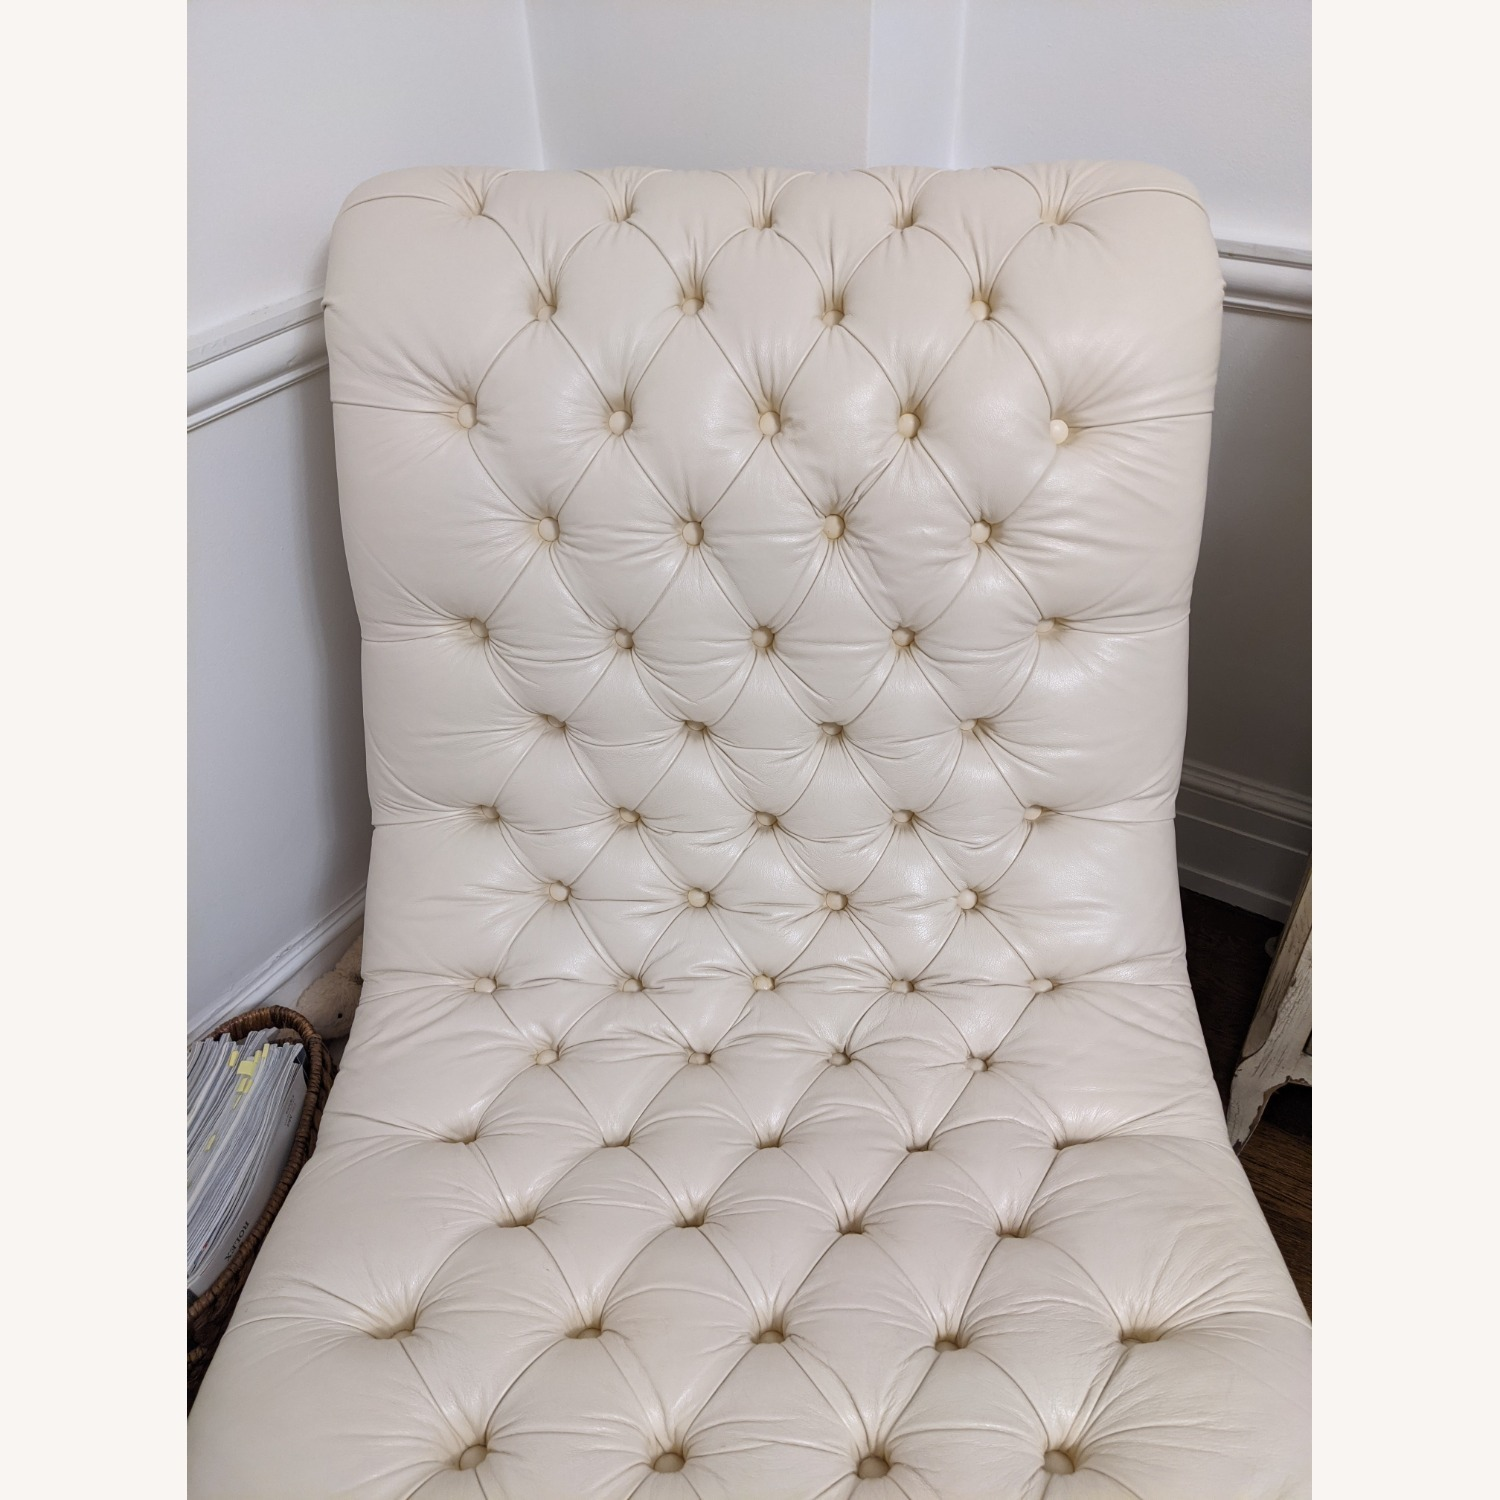 Ethan Allen Leather Chaise Long - image-9